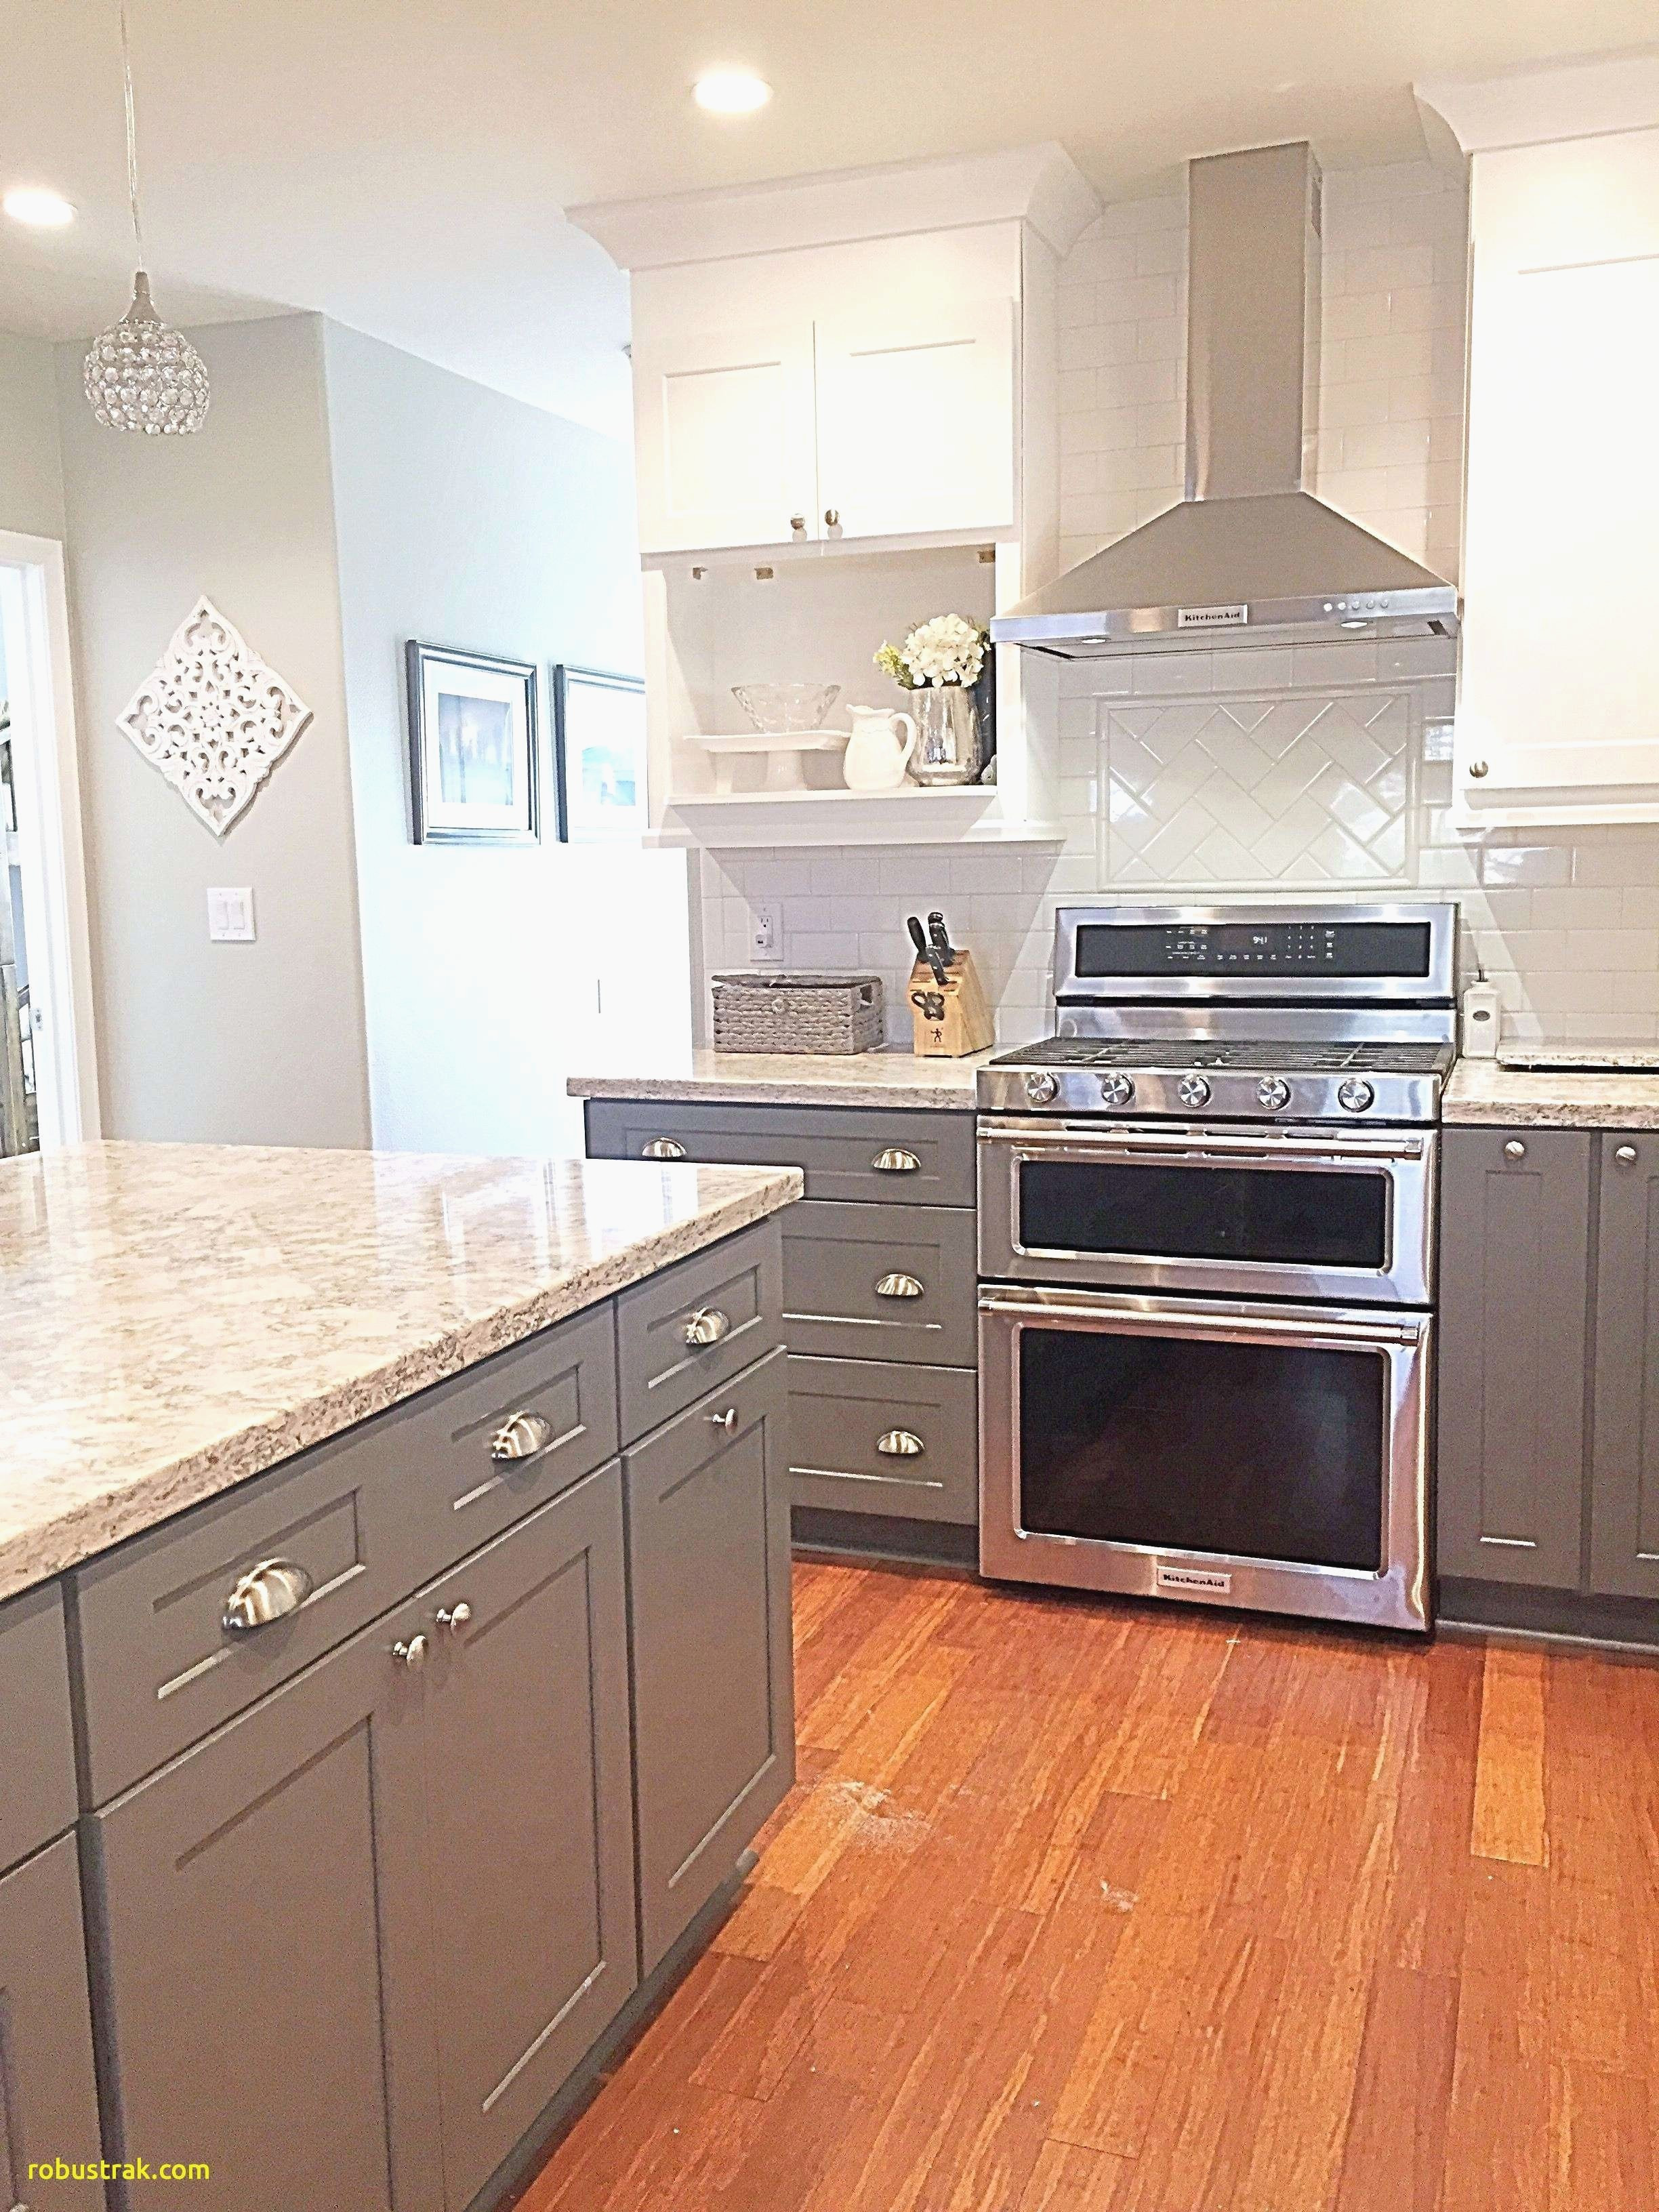 best hardwood floor vacuum canada of 14 new average cost for hardwood floors stock dizpos com inside average cost for hardwood floors inspirational great popular how much does it cost to have kitchen